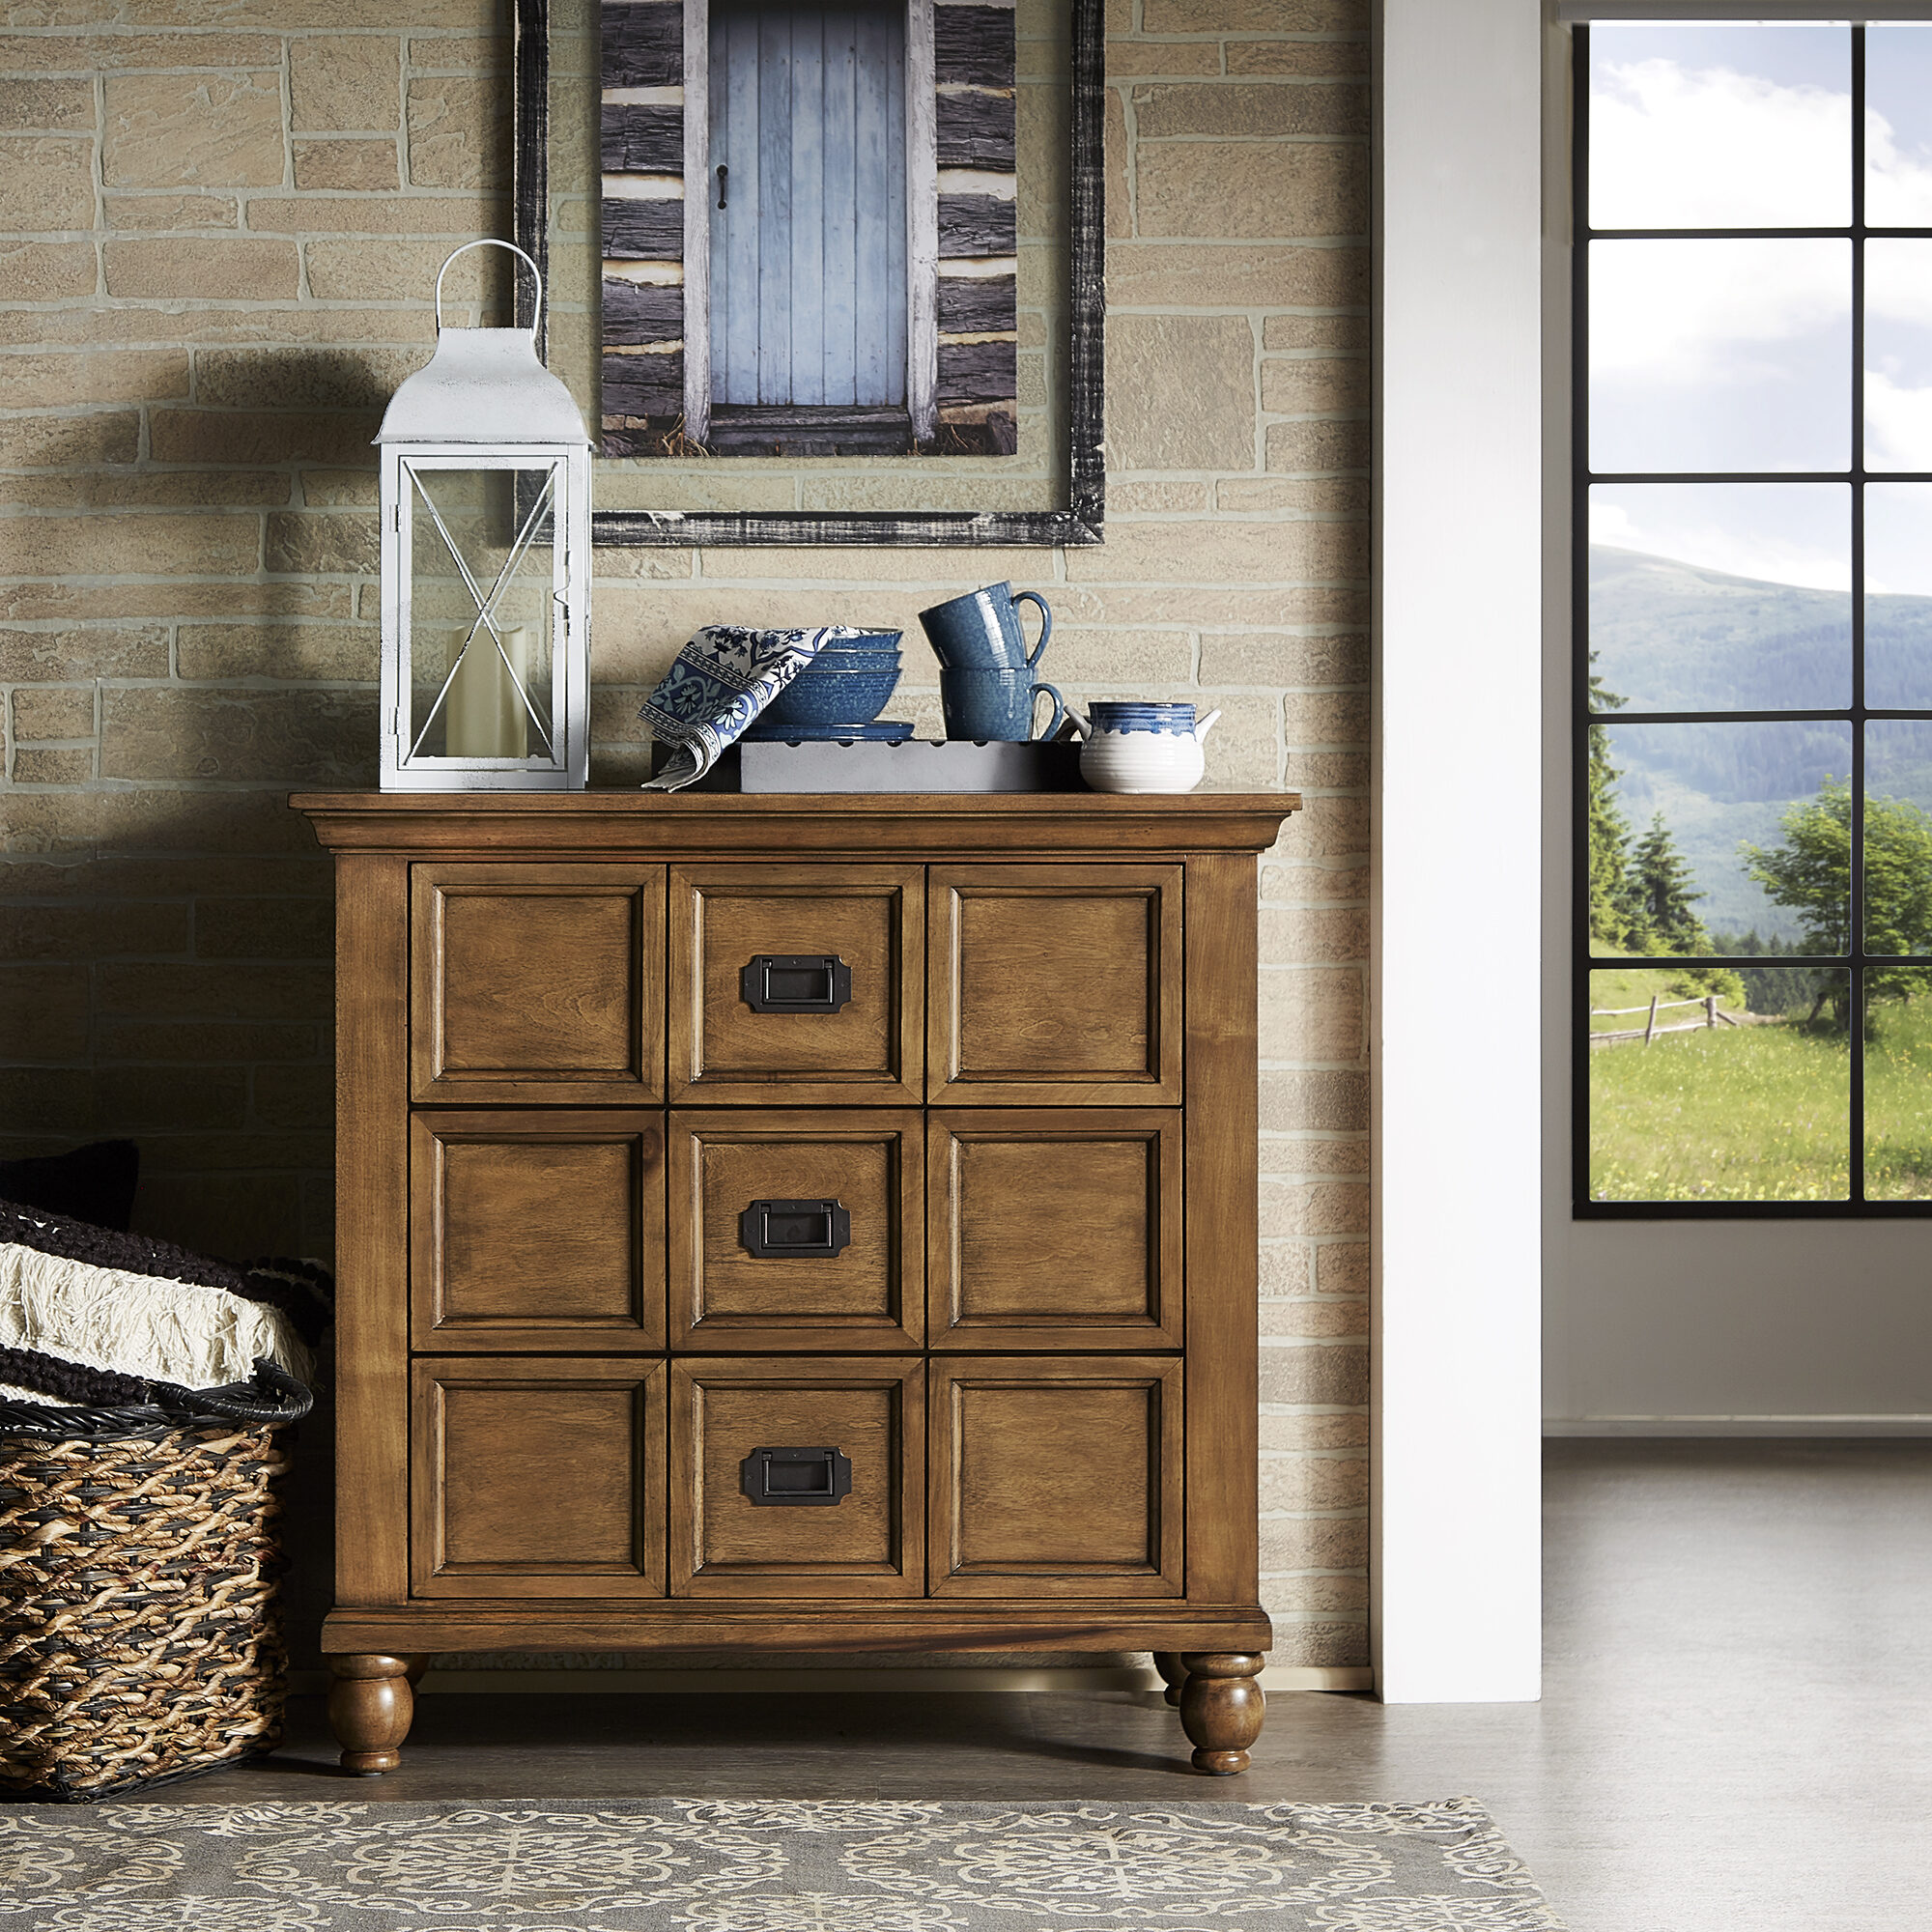 Apothecary cabinets can easily be overlooked but they offer great storage options for small spaces. This is our Whitney 3-Drawer Antique Apothecary Chest by iNSPIRE Q Classic Classic.